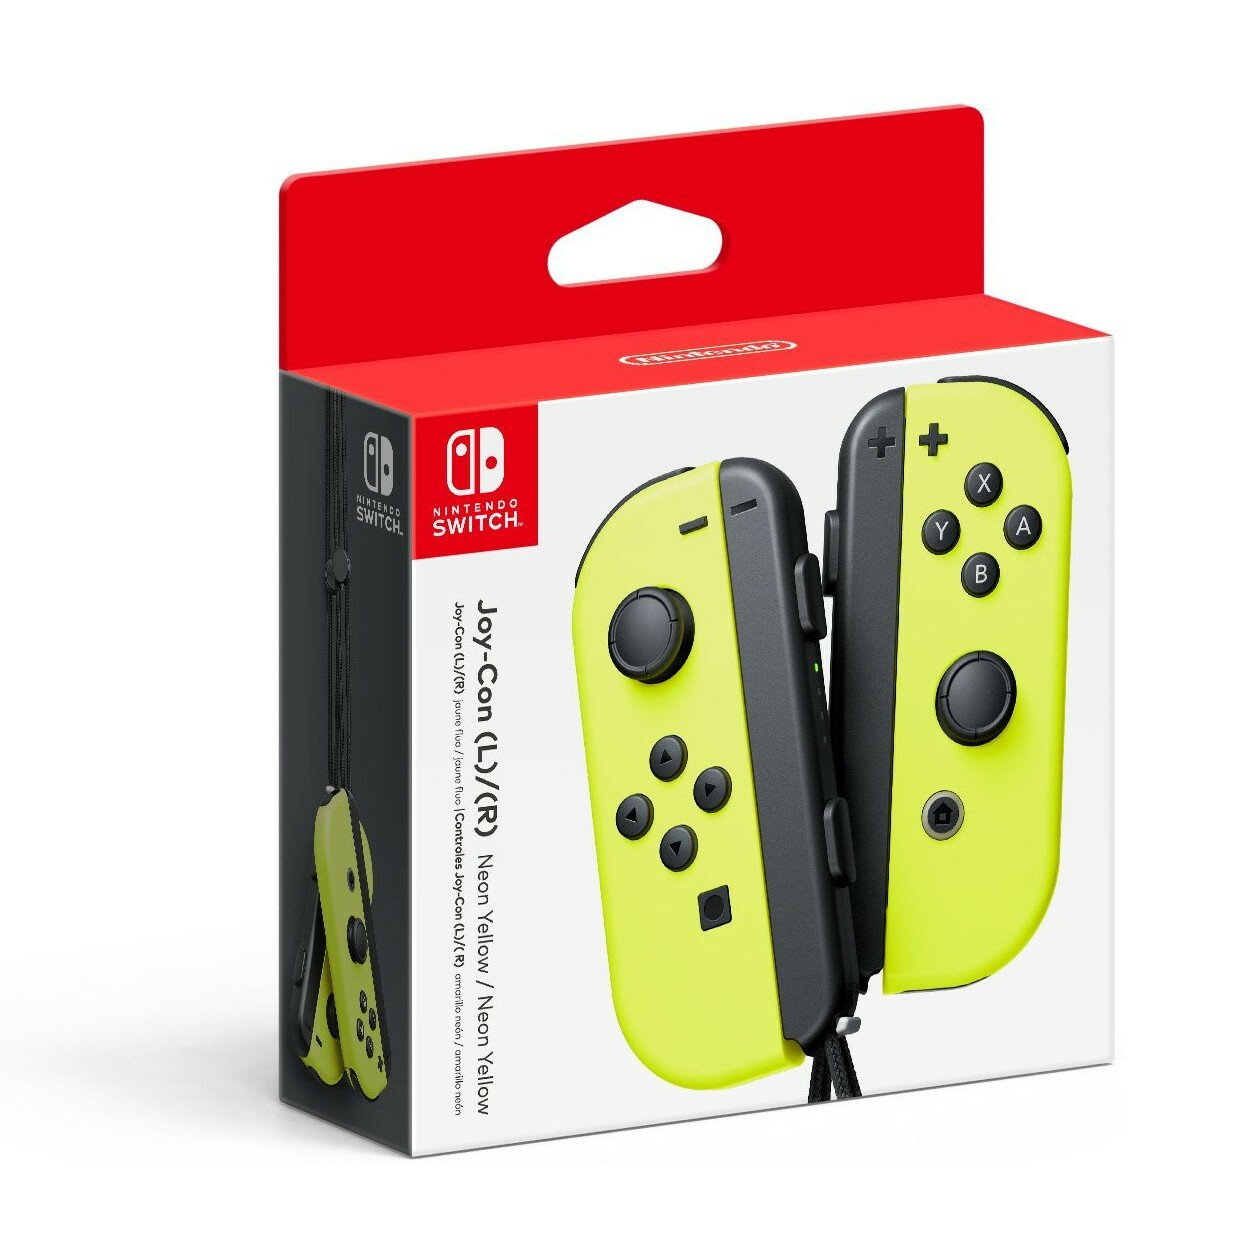 Nintendo Switch - Joy-Con - Neon Yellow - (Left/Right) Controllers 0